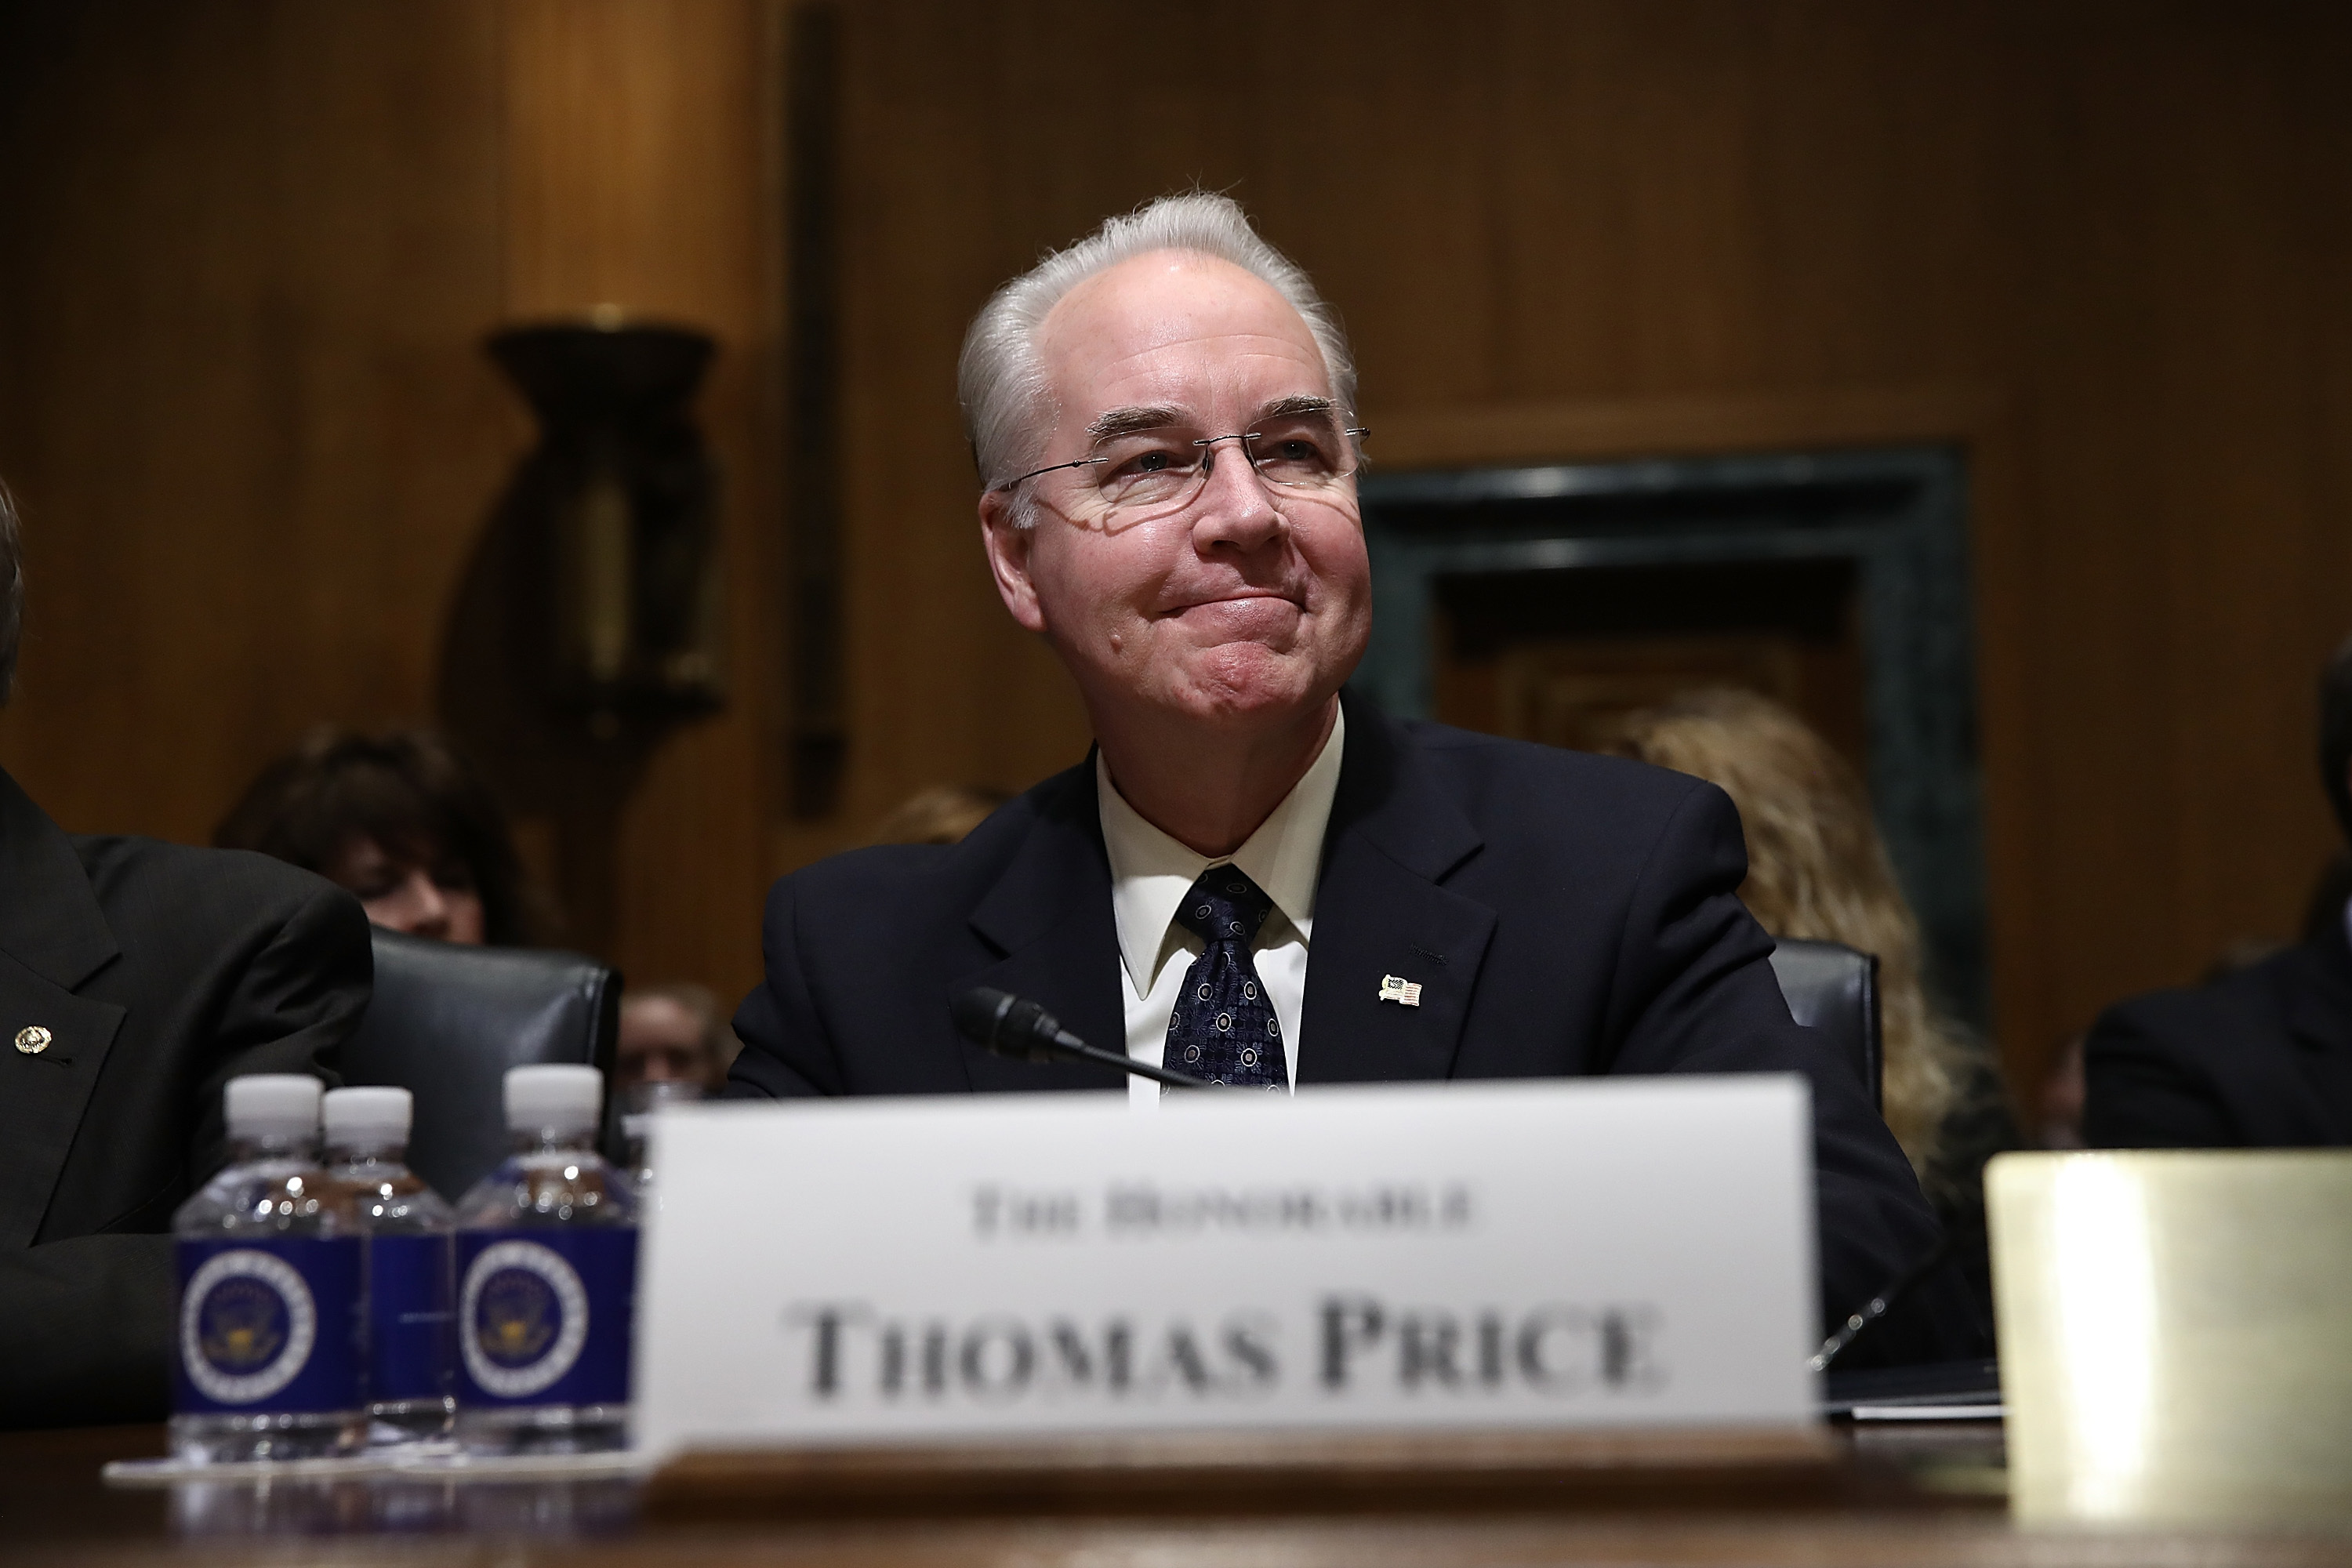 "Trump's Health and Human Services secretary Tom Price. When asked at his confirmation hearing if vaccines caused autism, he said ""I think the science in that instance is that they don't, but there are individuals in our country who are very..."" He was cut off before he could insert doubt."